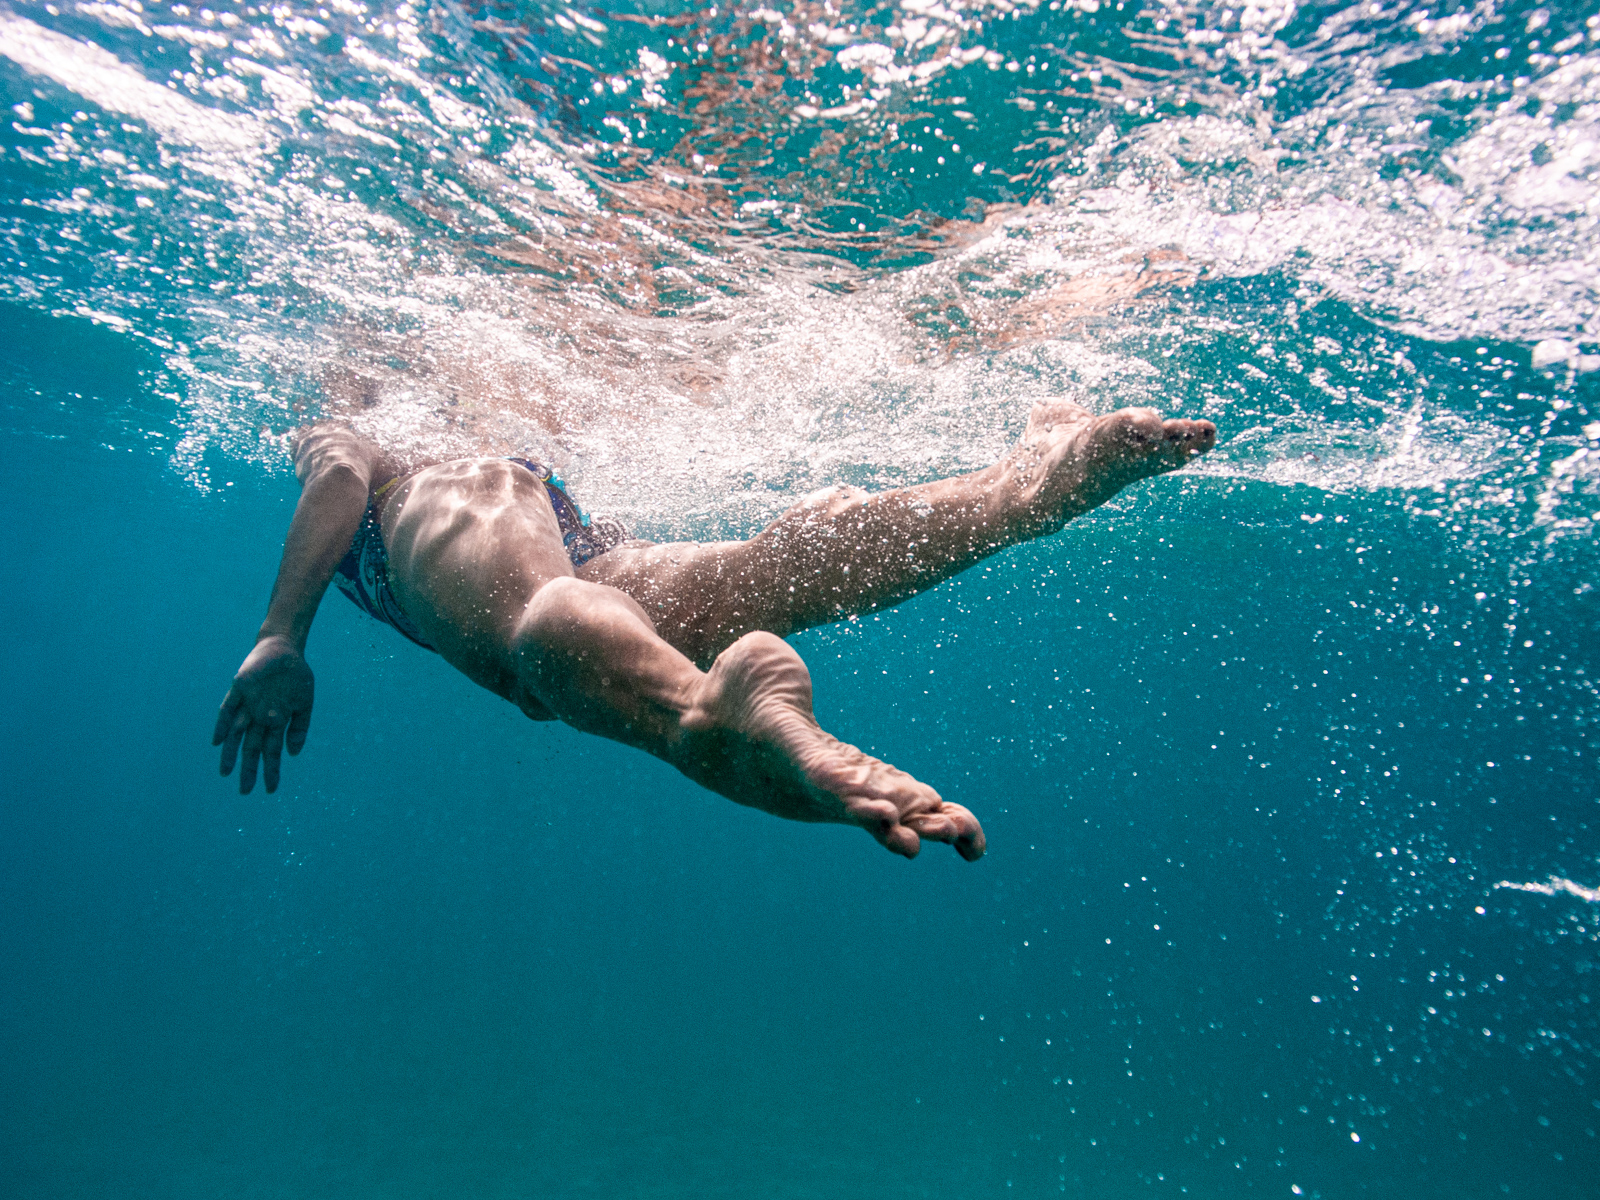 Heather Perry's underwater image from below and behind a swimmer with the light bouncing through the water and bubbles